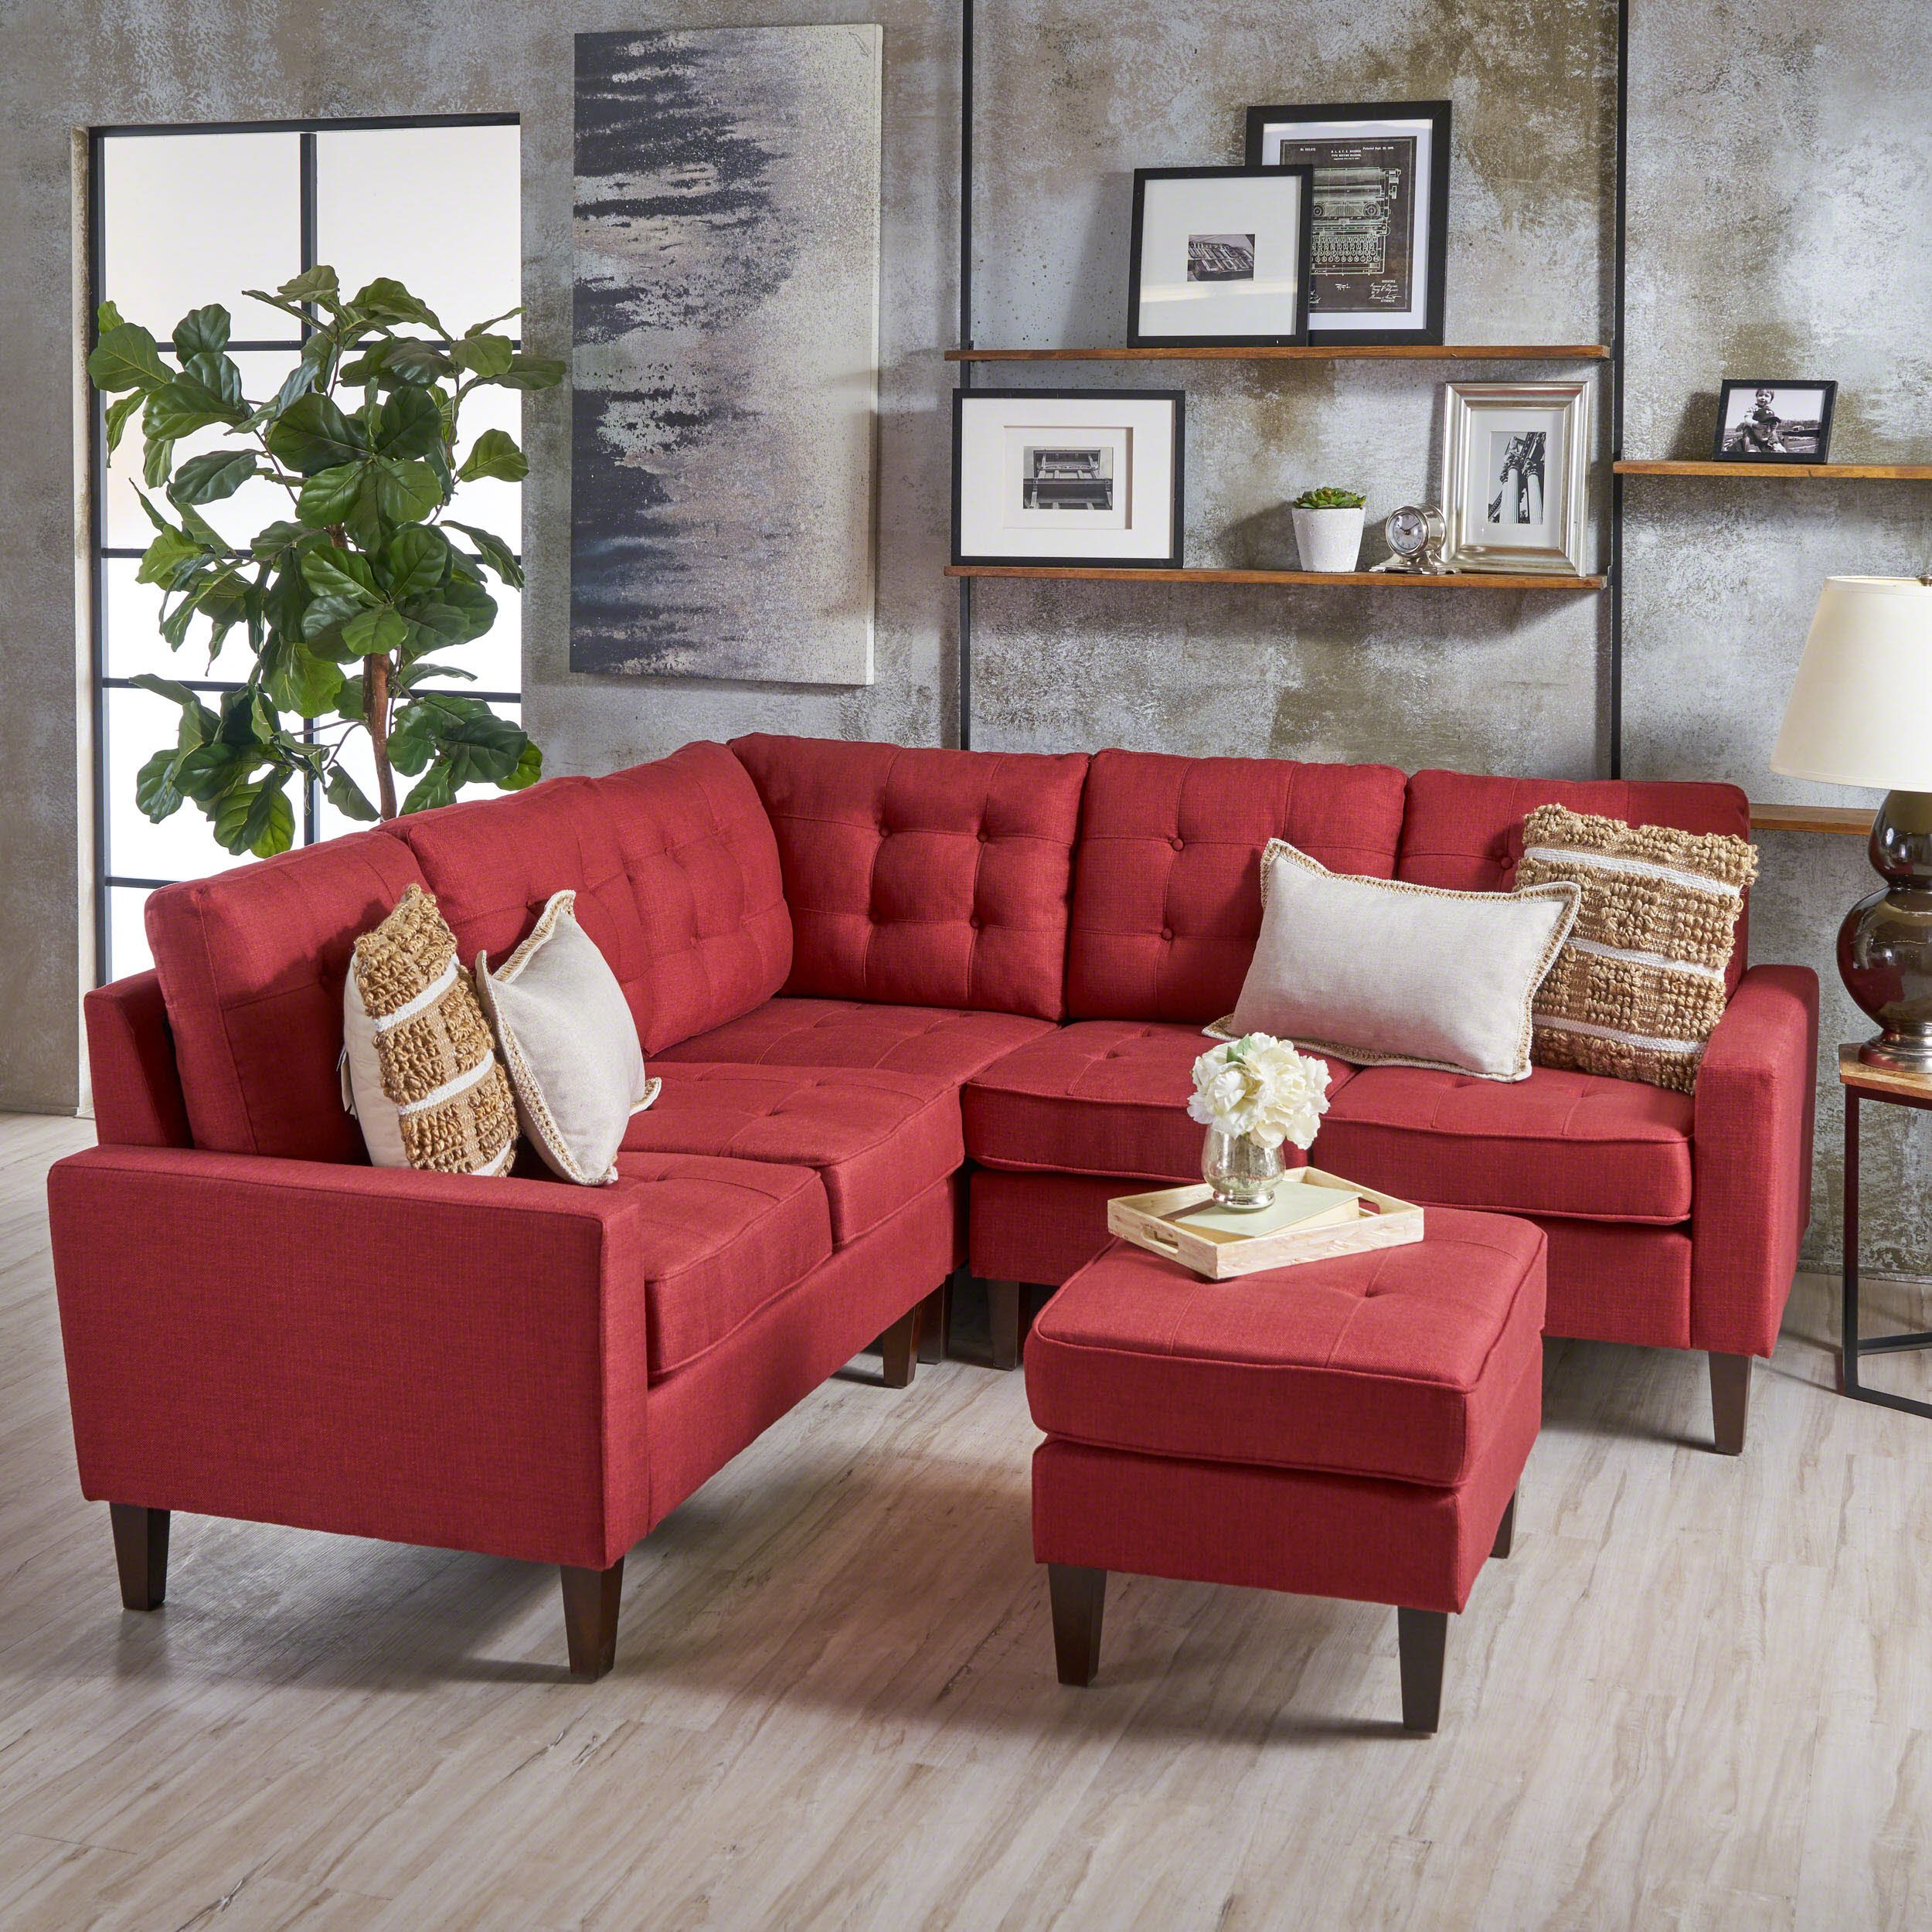 Niya Mid Century Modern Red 4 Piece Sectional Sofa with Ottoman by Christopher Knight Home